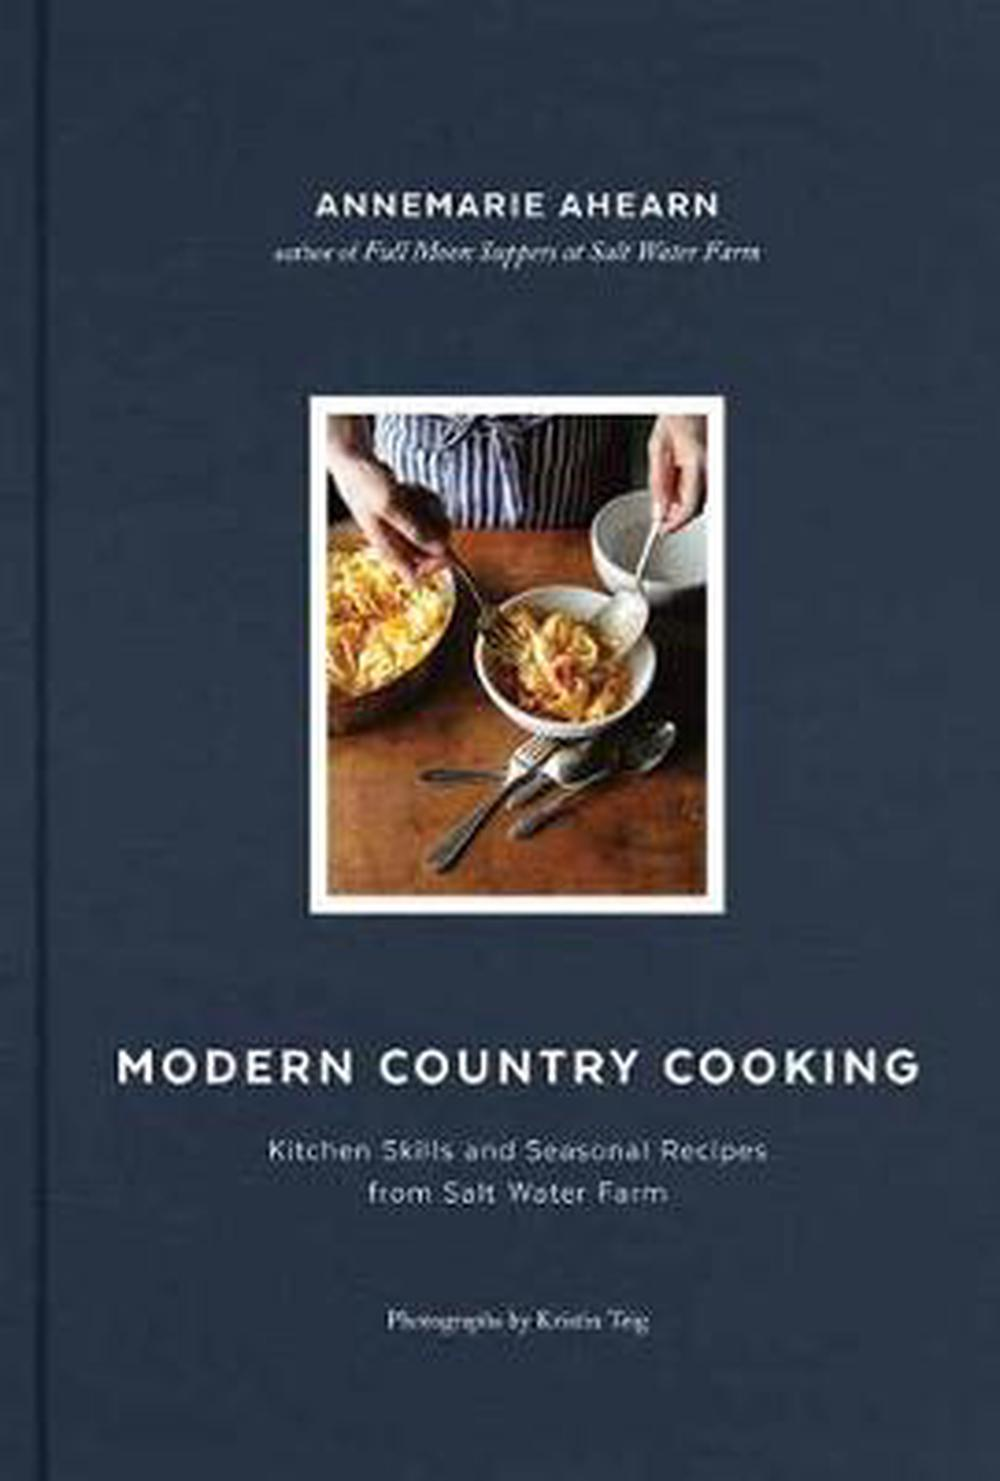 Modern Country Cooking